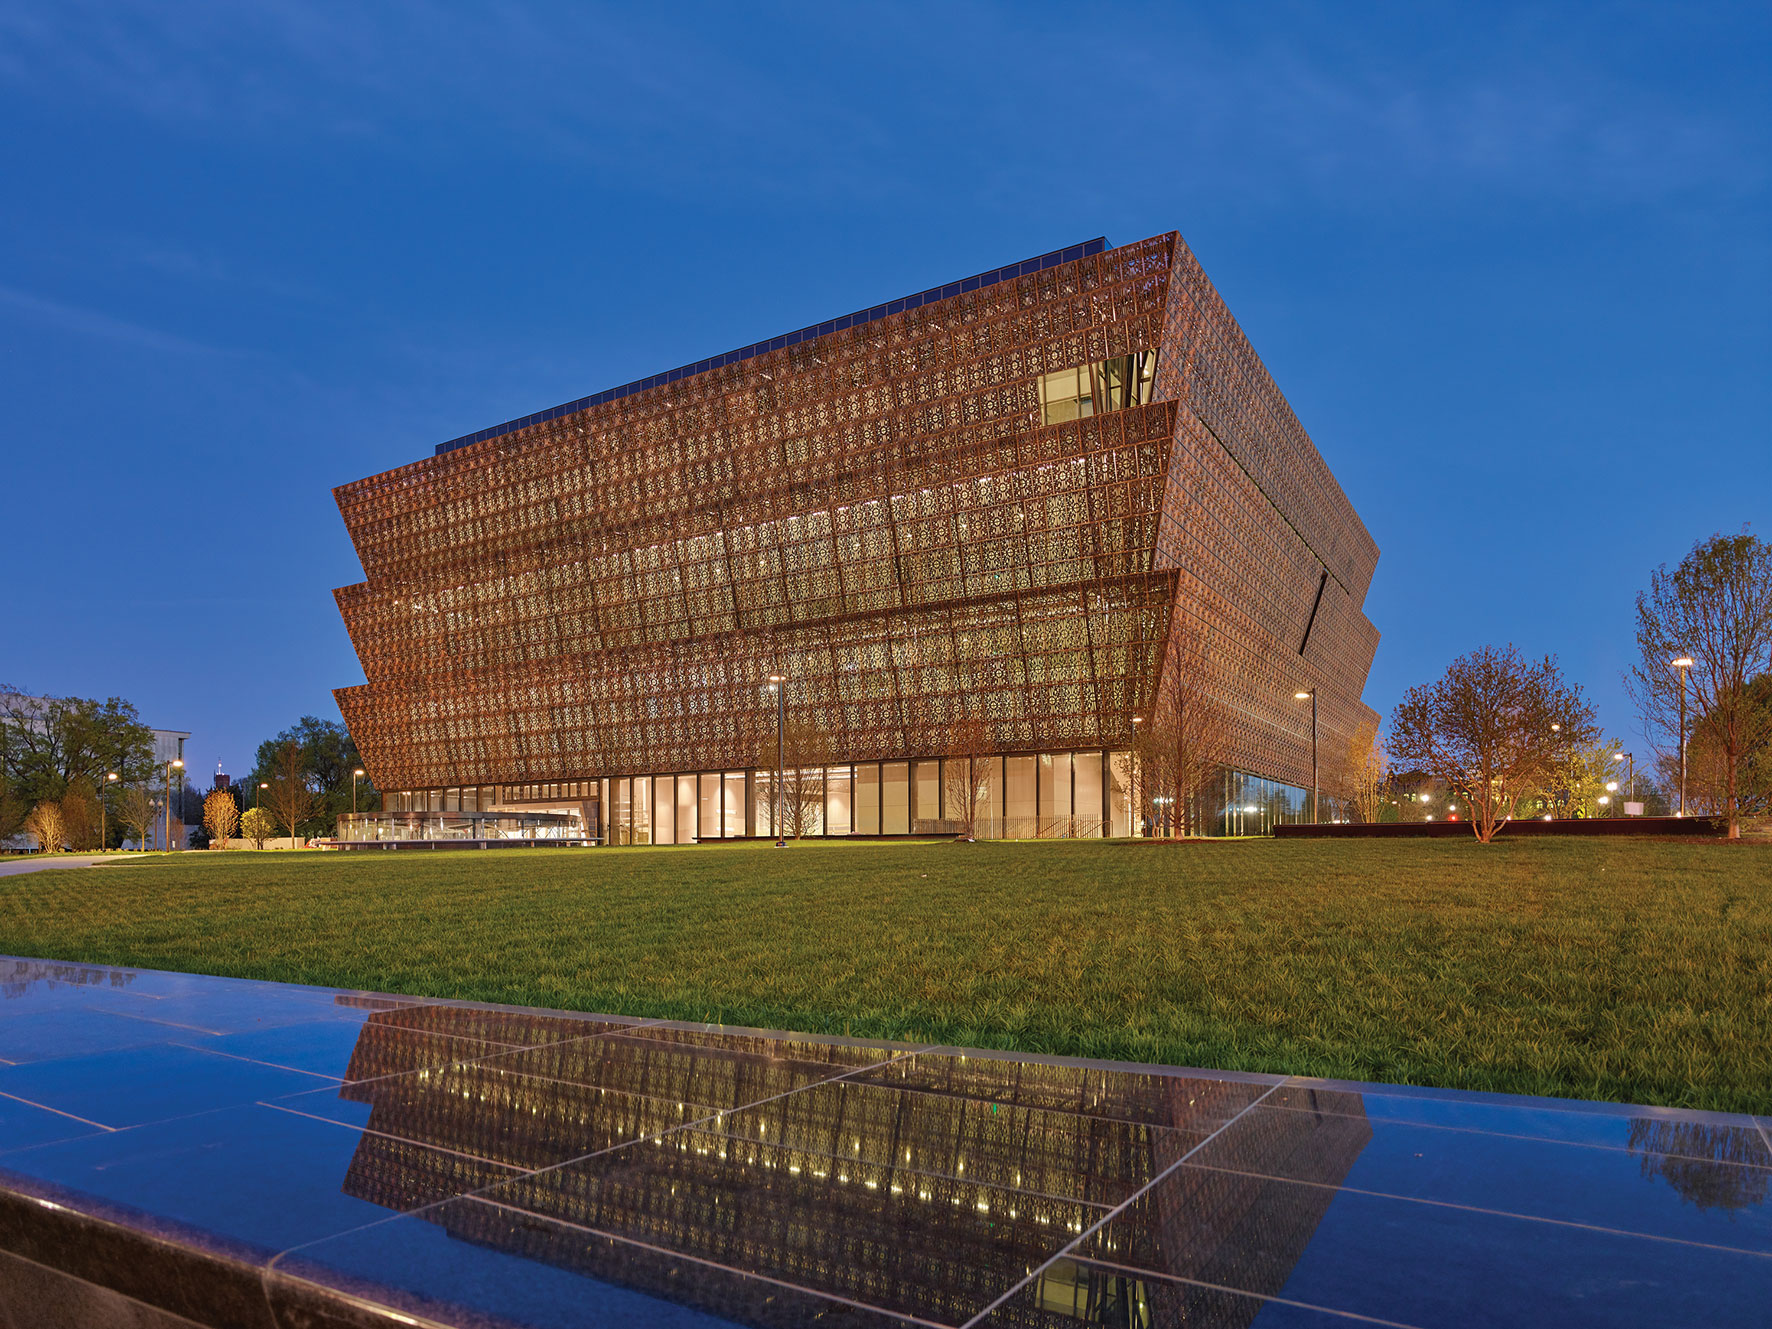 Architectural Designs Traditional African Art Referenced In David Adjaye Architectural